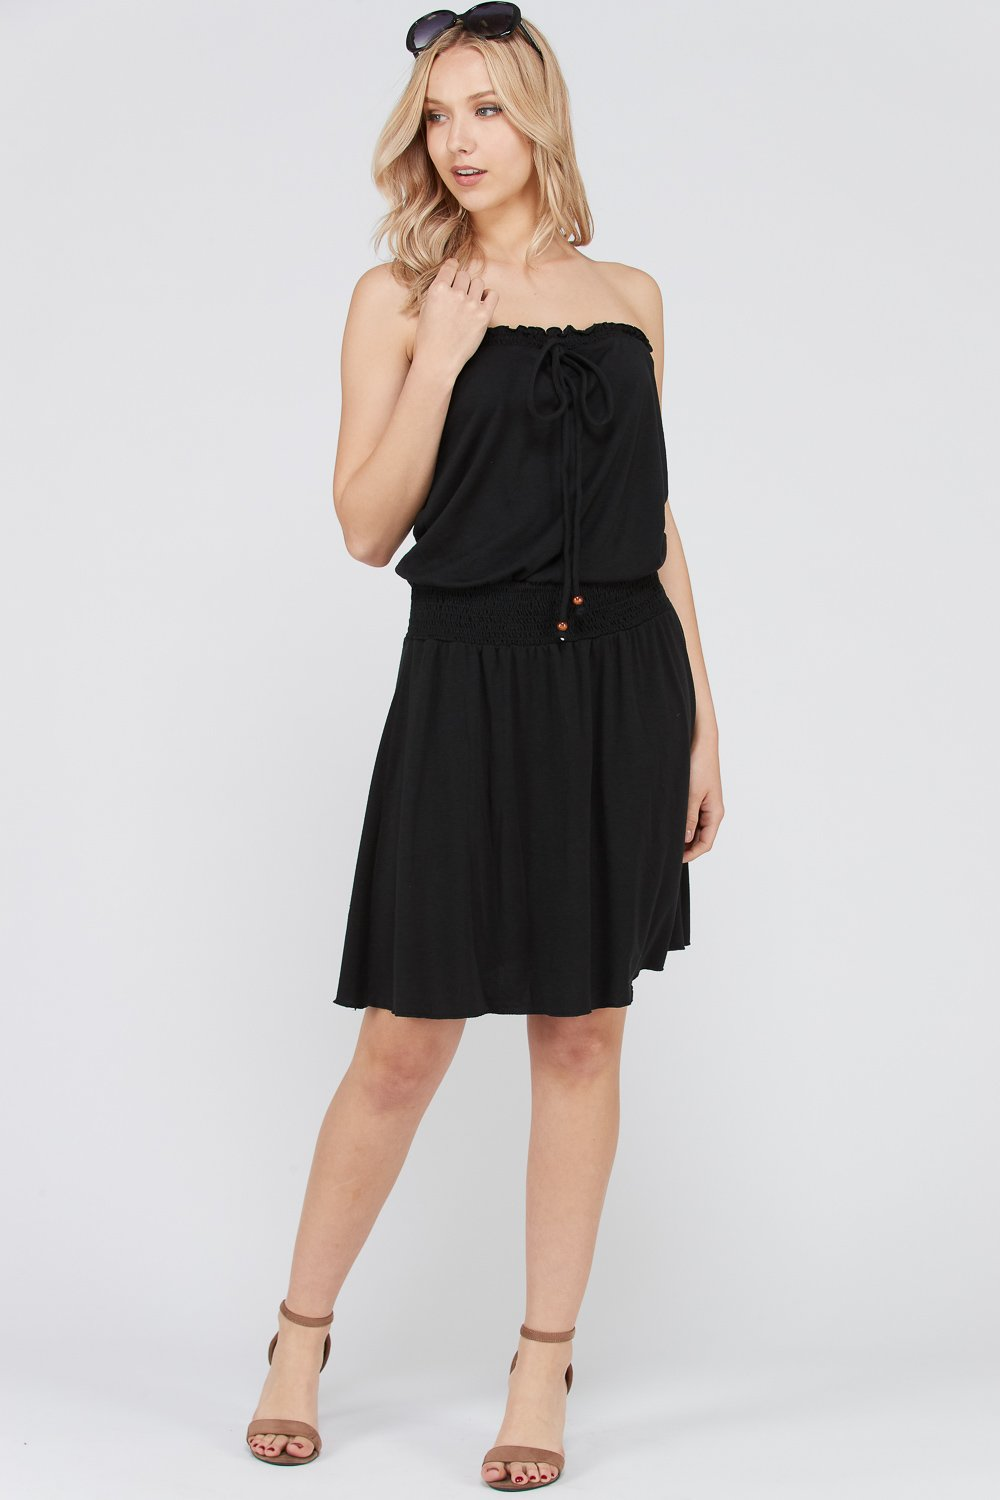 Shameless Strapless Black Dress